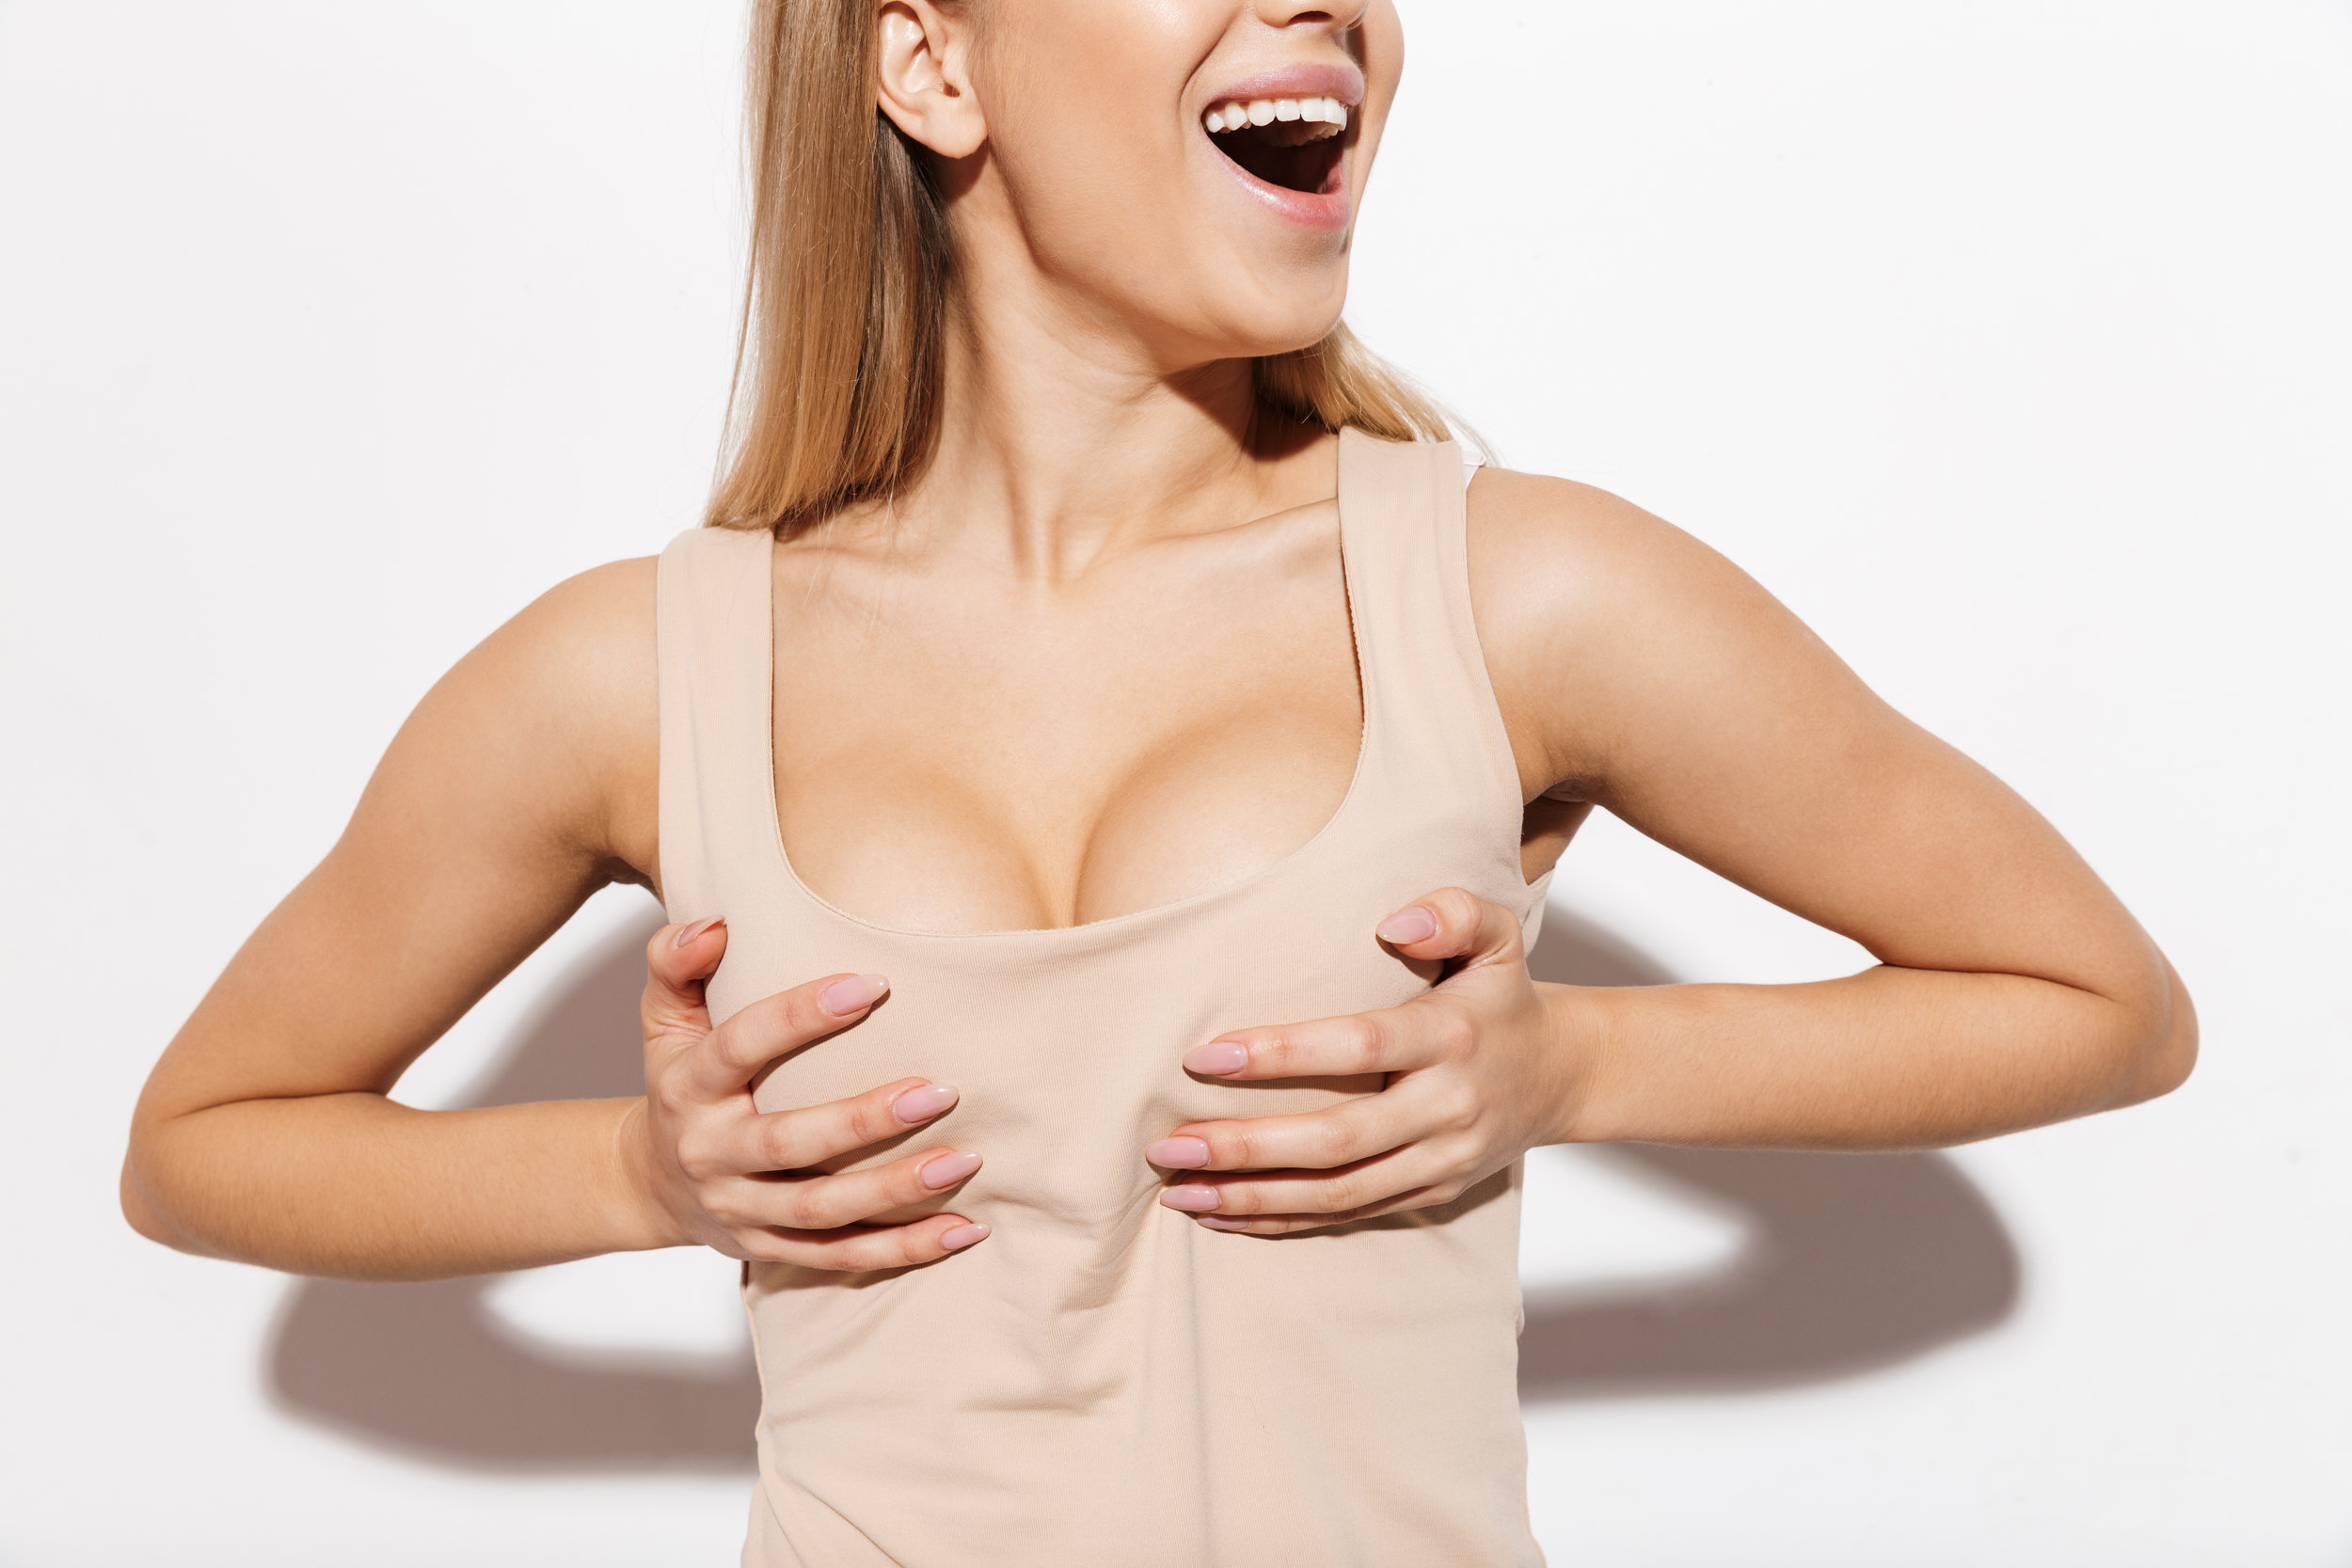 LEARN MORE - about breast implants